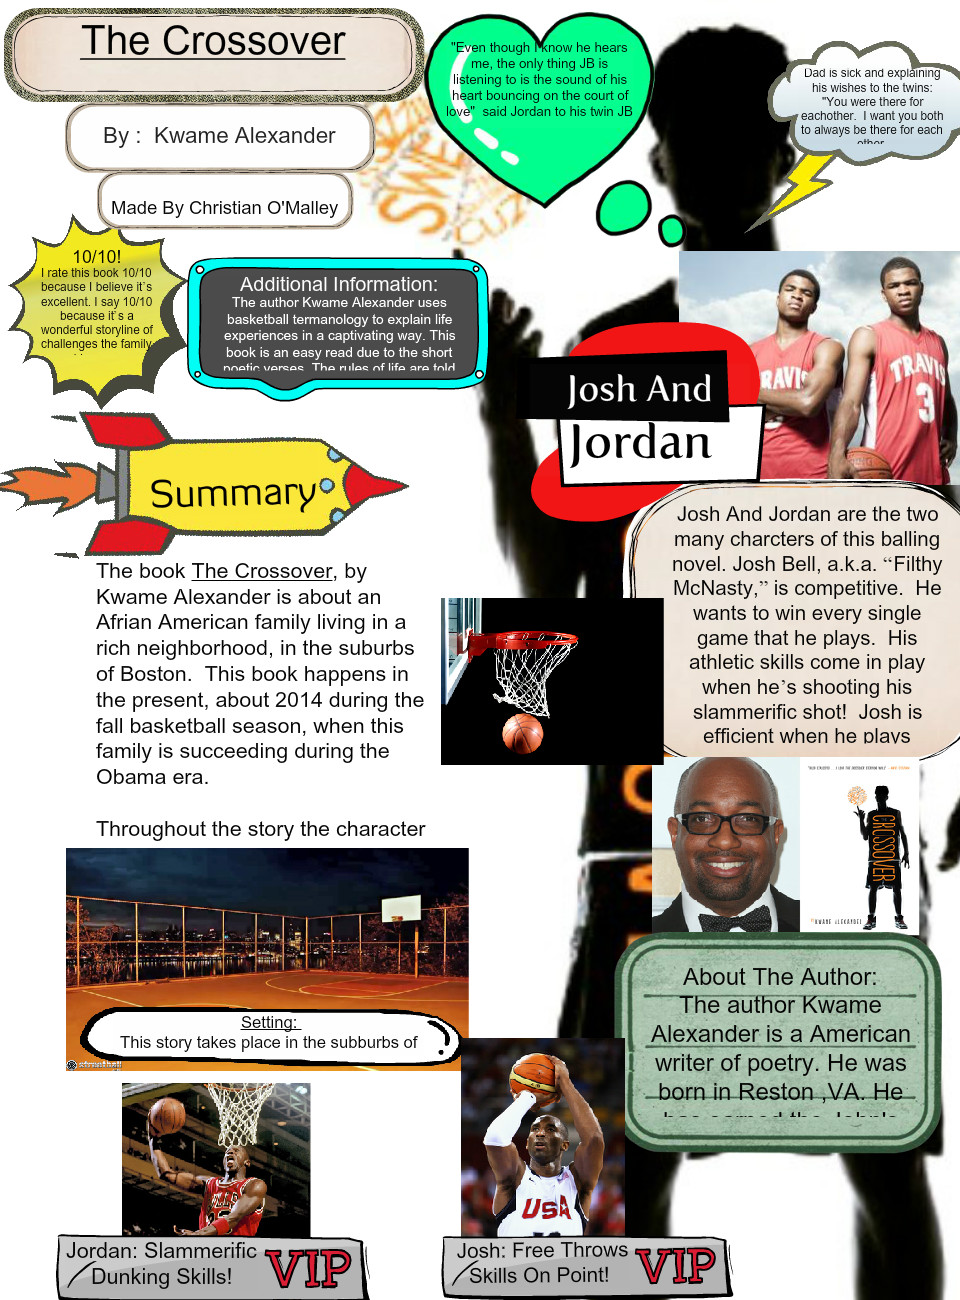 Crossover Book Review Project - Per 8.